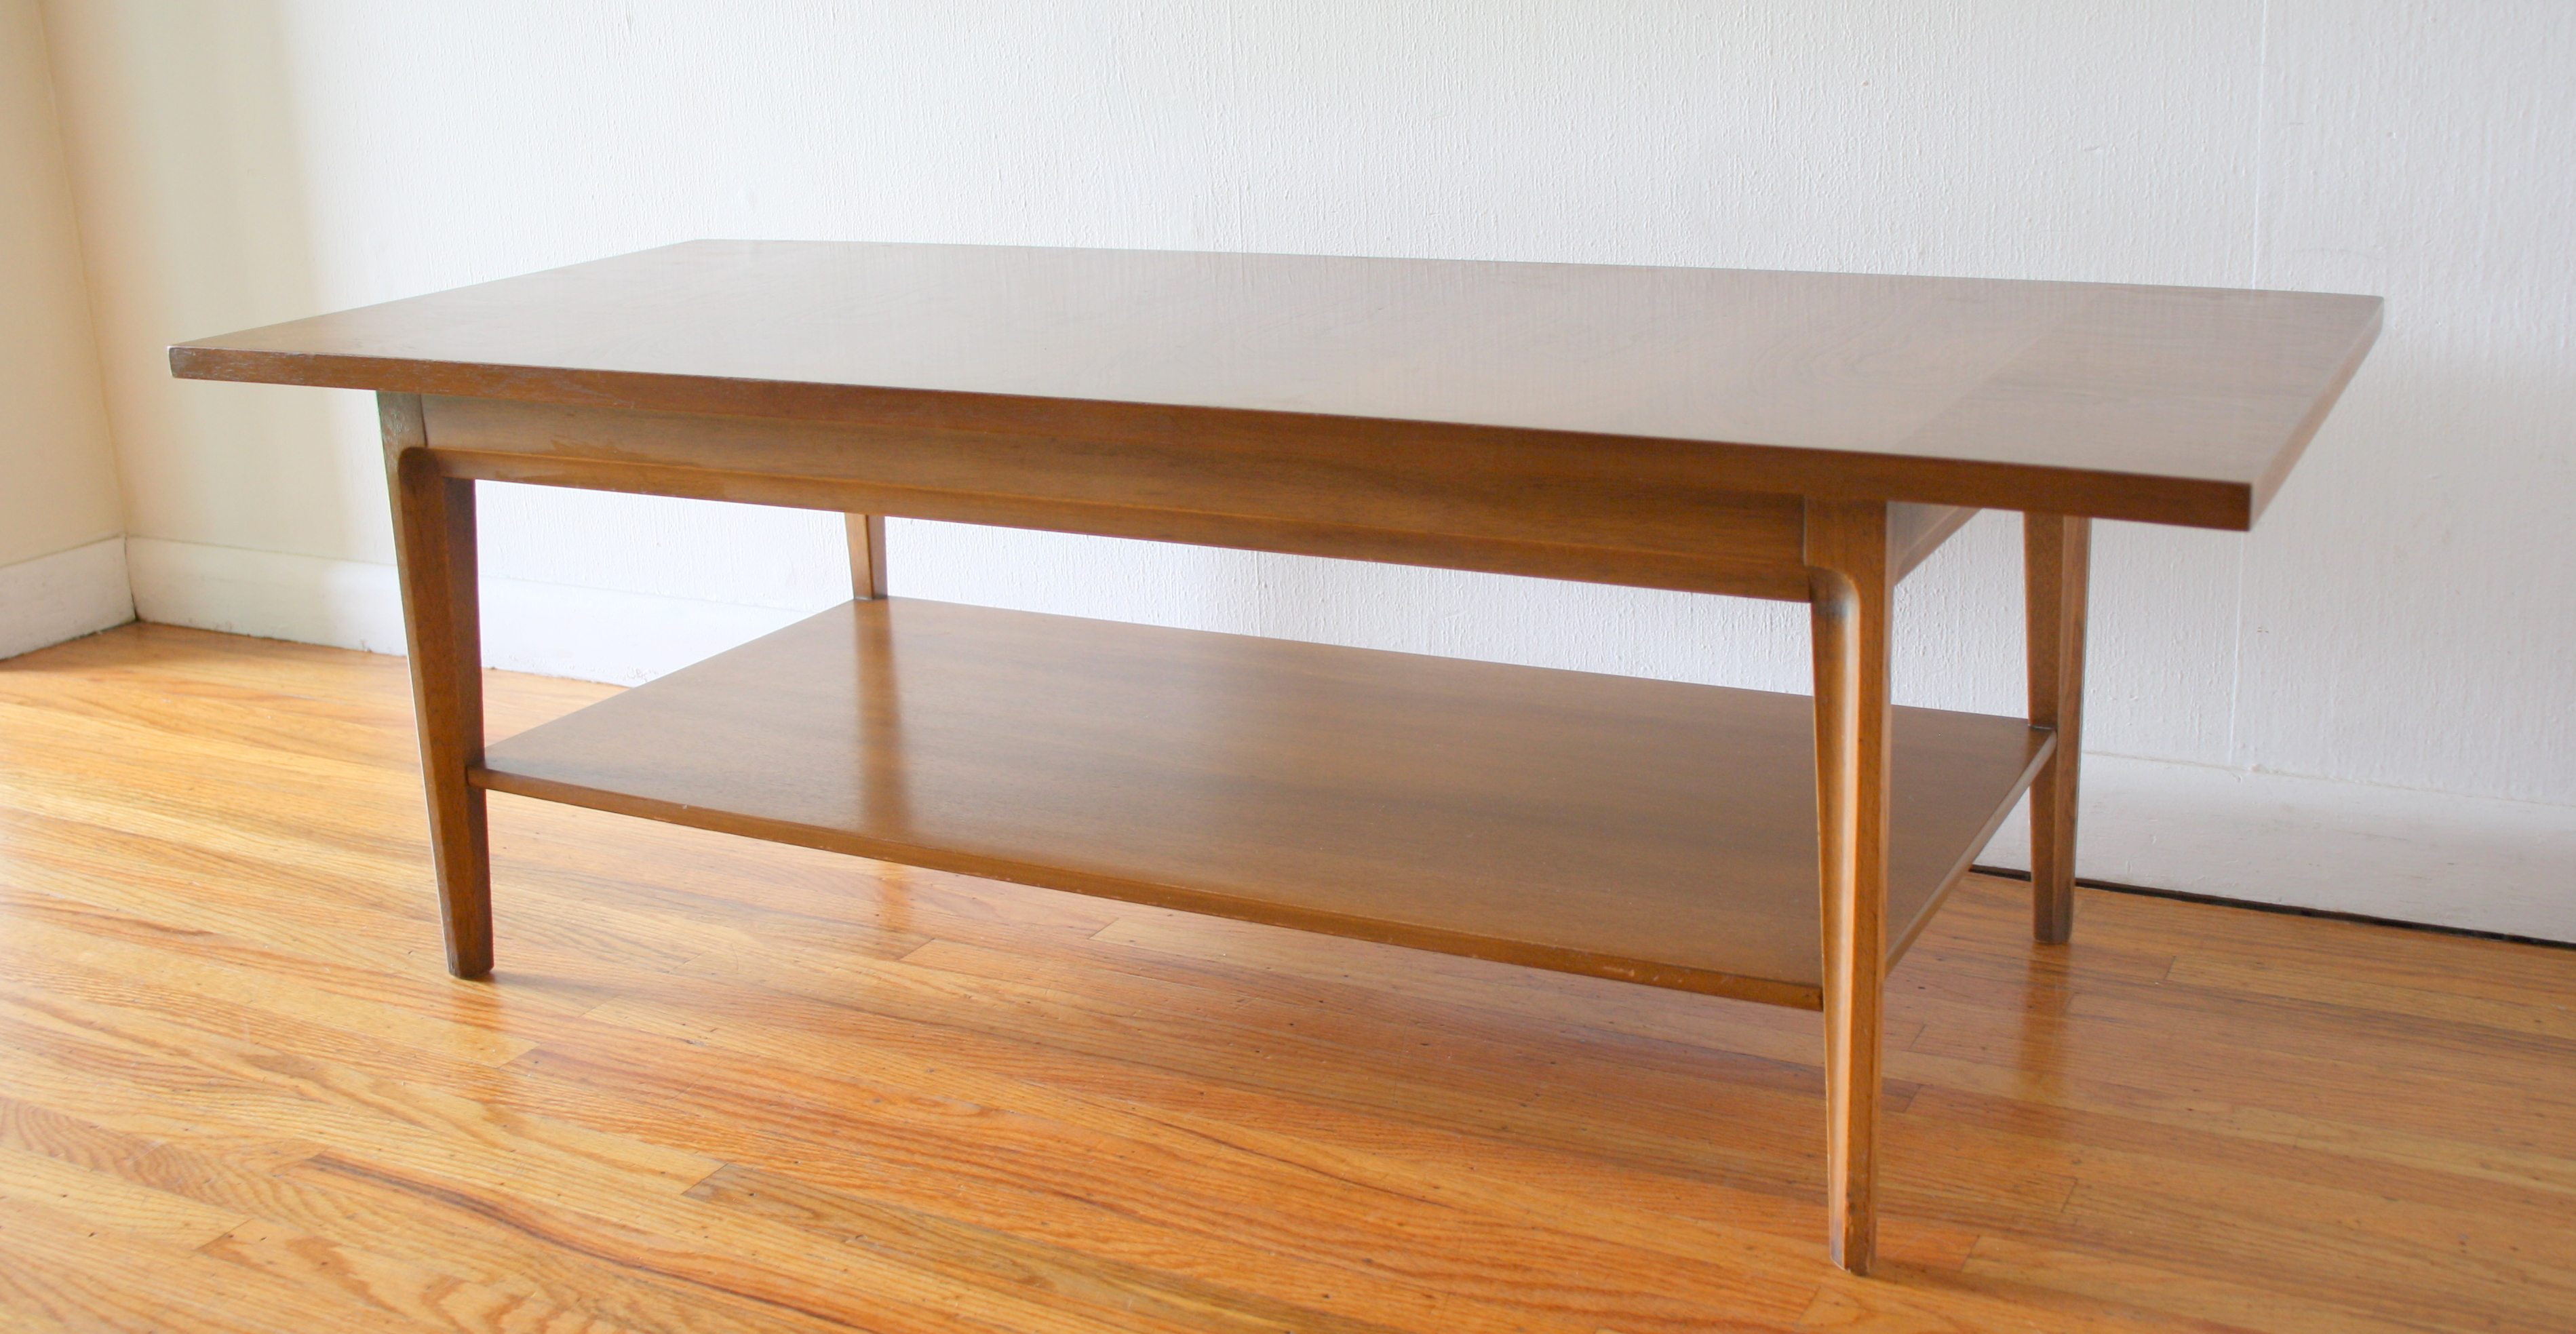 Mcm coffee table with sculpted tapered legs 1.JPG